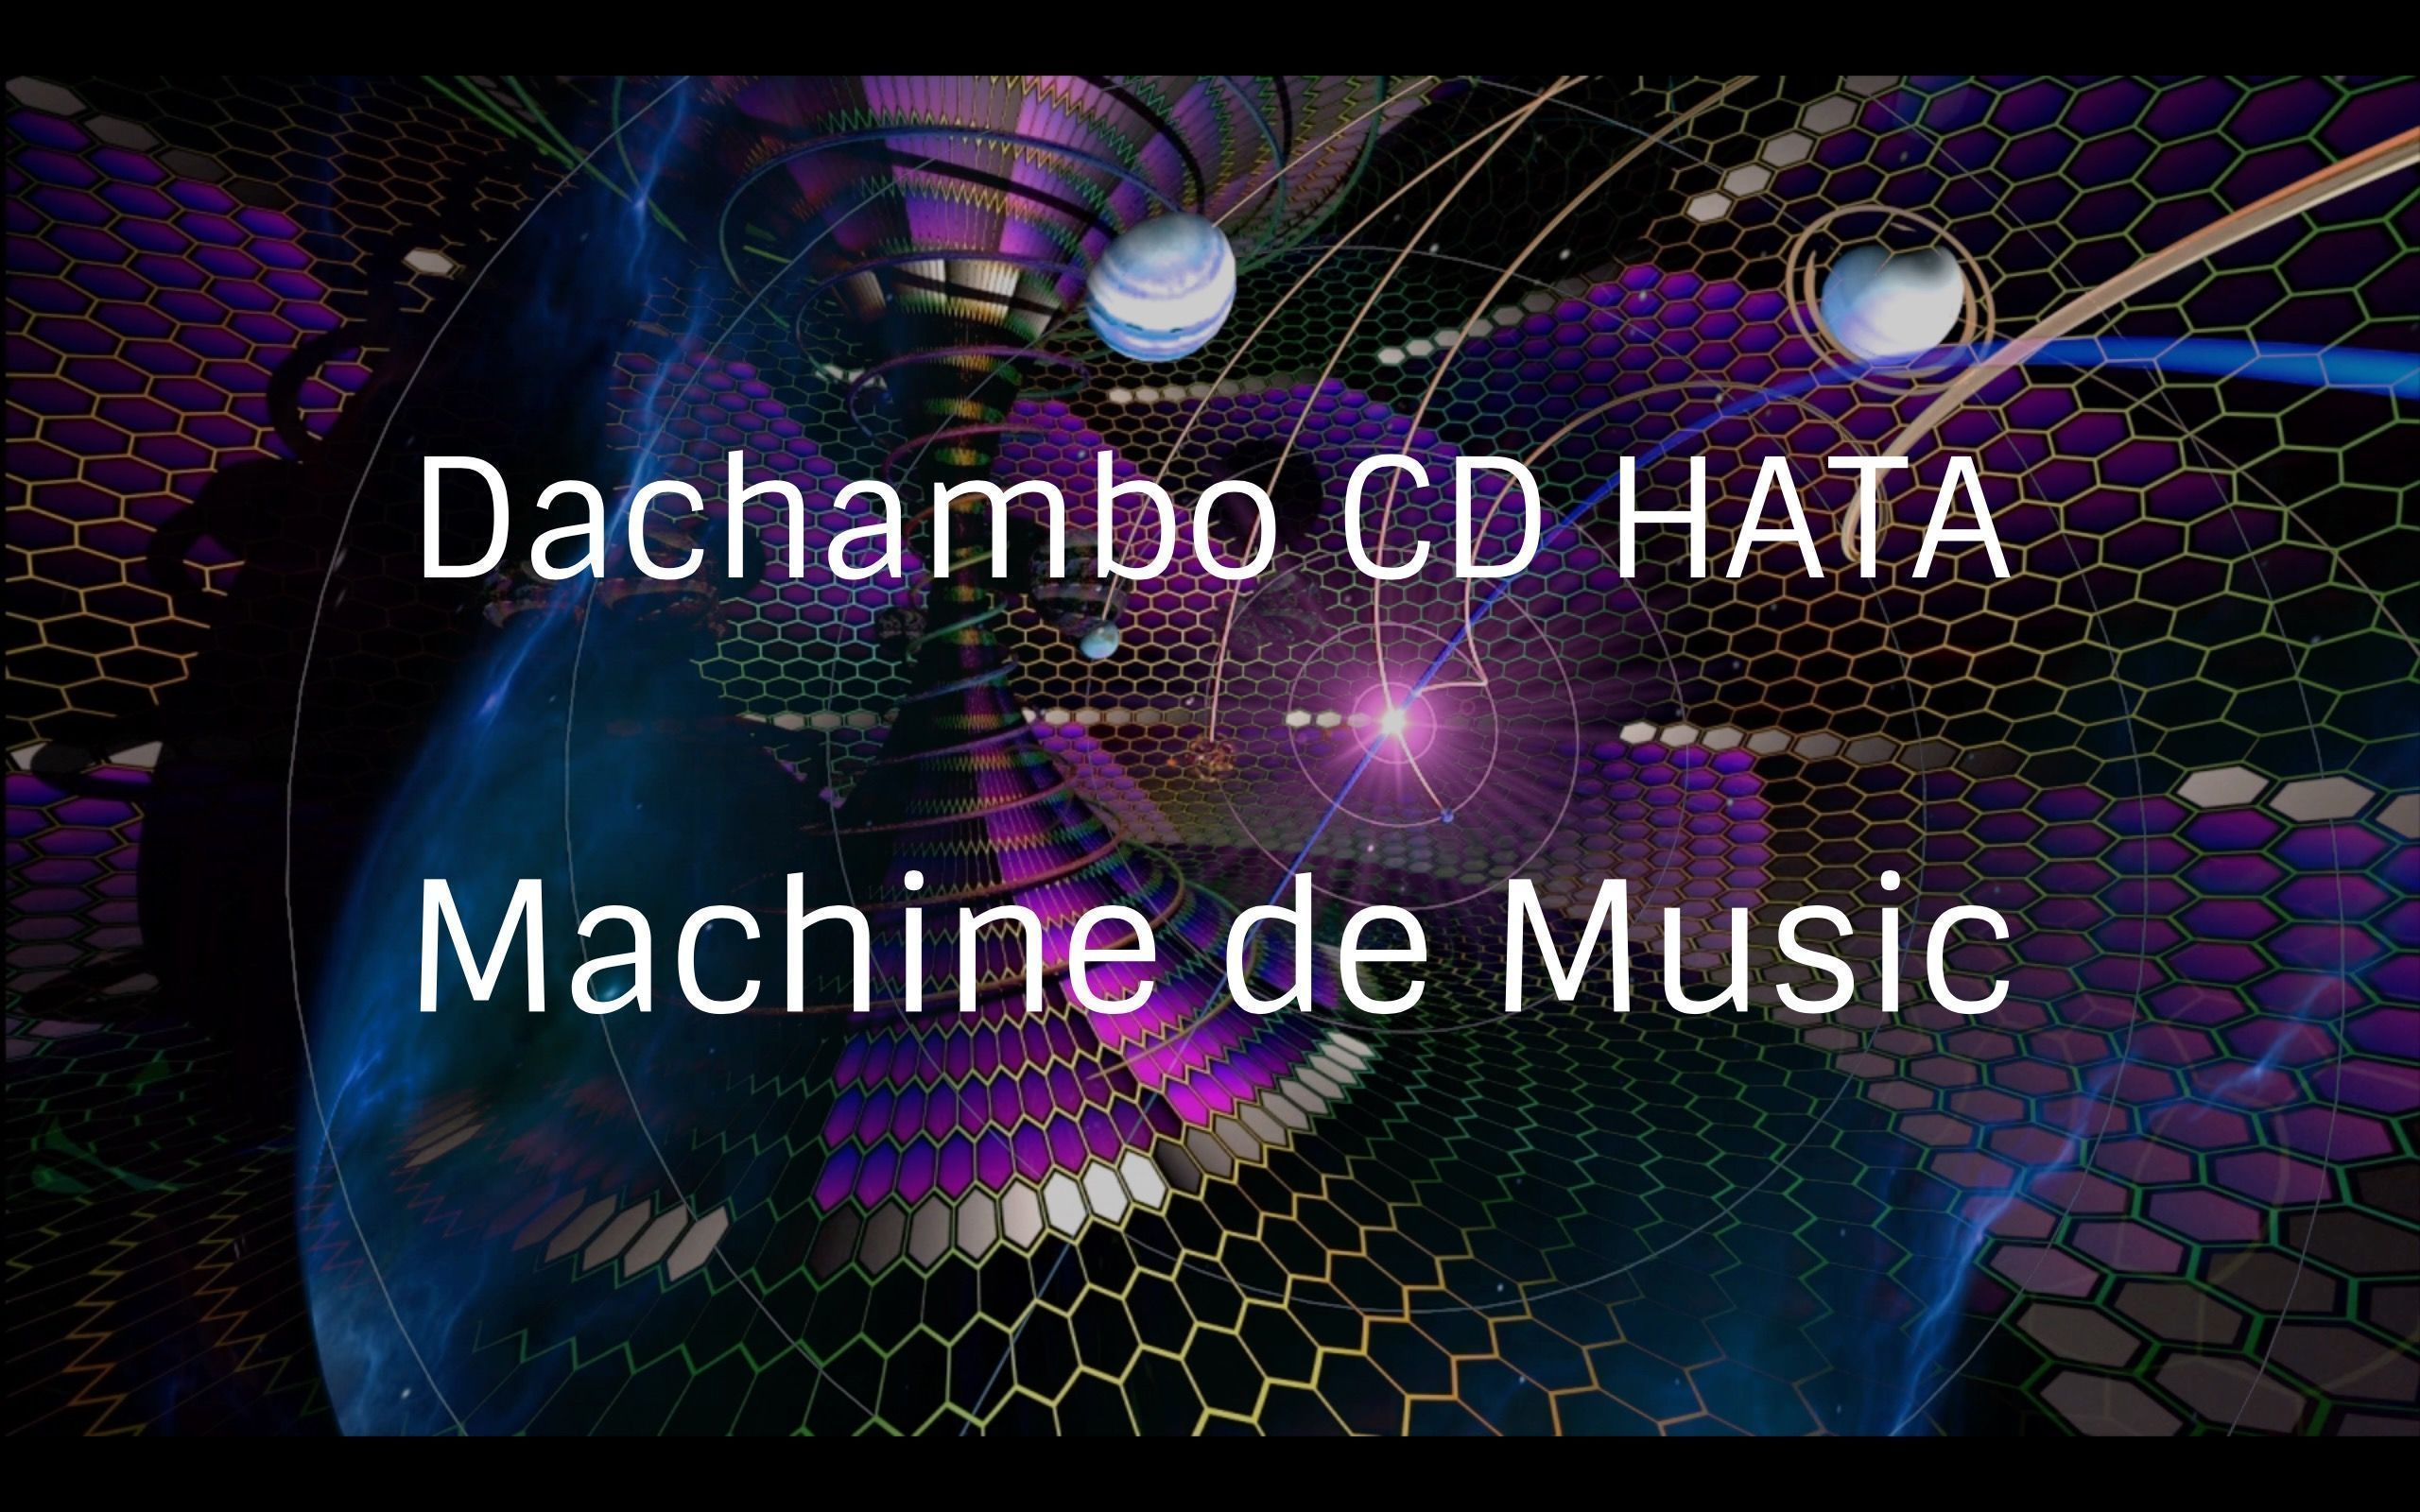 "Dachambo CD HATAのMachine de Music コラムVol.69 Invisible Designs Lab. 改め ""インビジ"" そして invisi fellows"